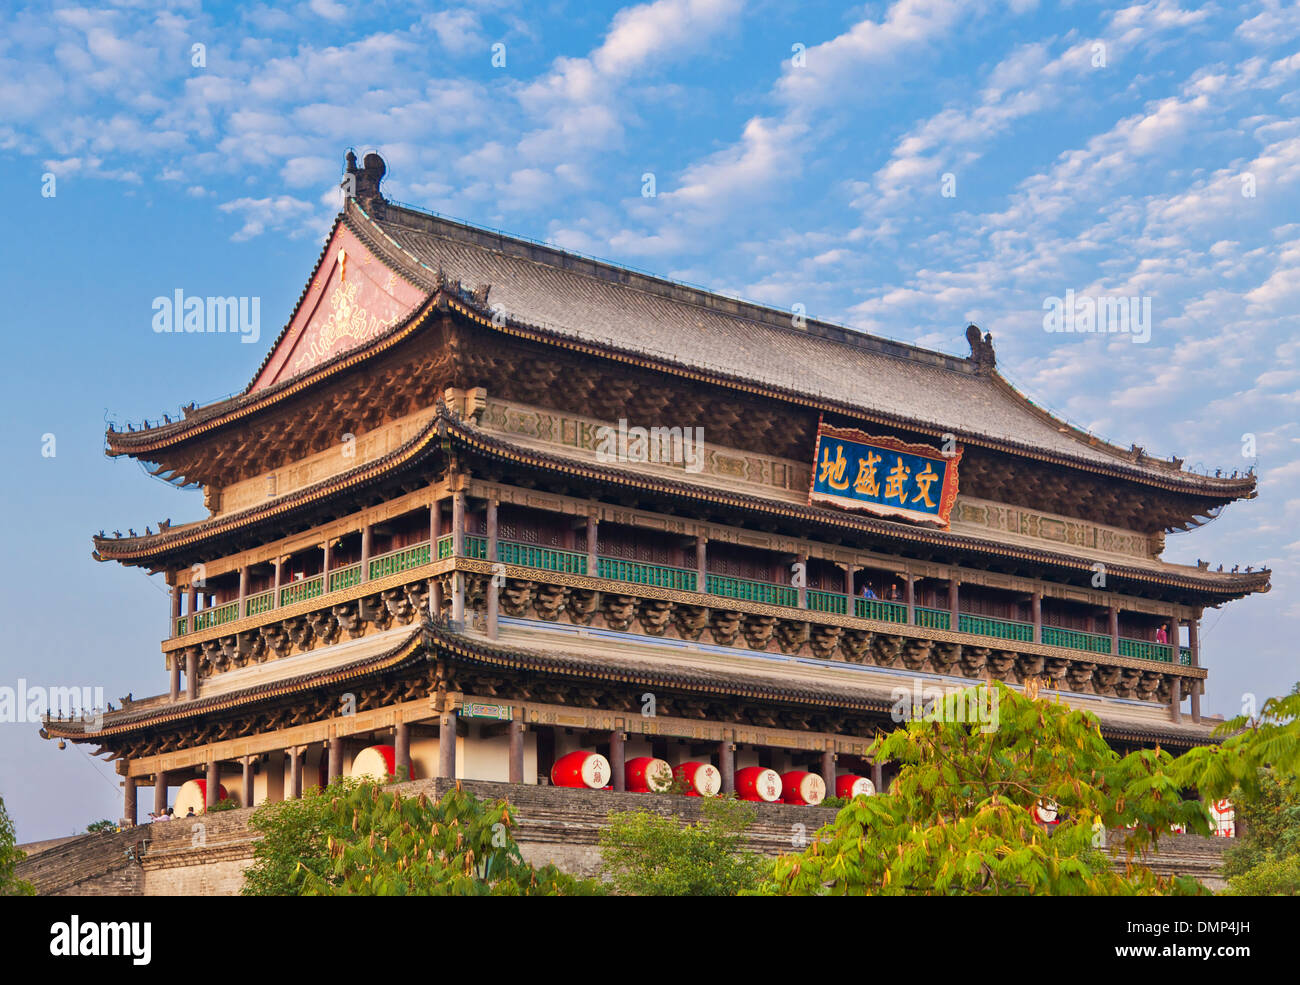 Anding gate or West gate tower on the city walls Xian Shaanxi Province, PRC, People's Republic of China, Asia - Stock Image